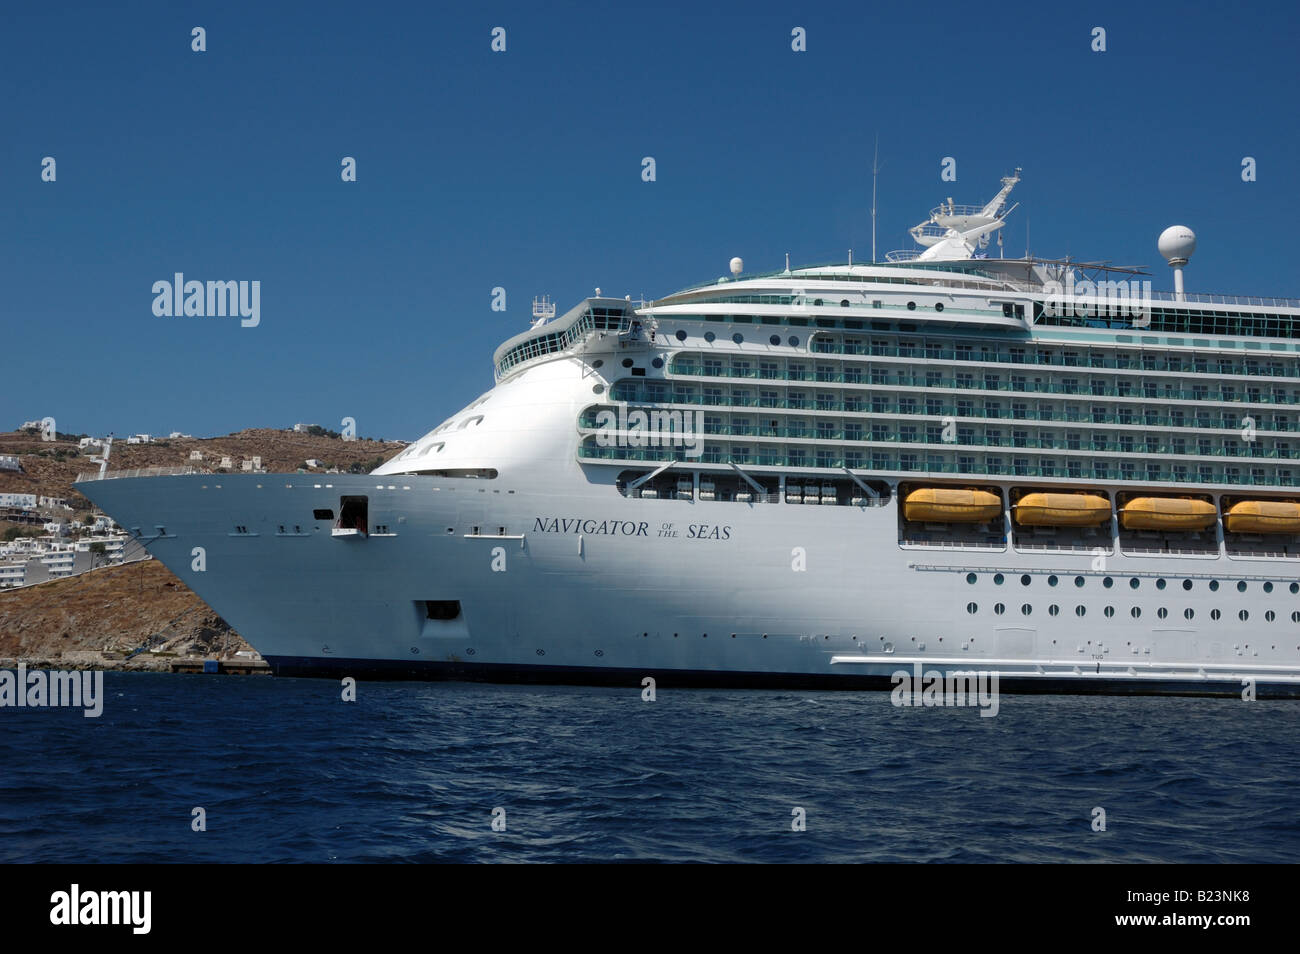 RCI cruise ship Navigator of the Seas moored in Mykonos, Greece - Stock Image